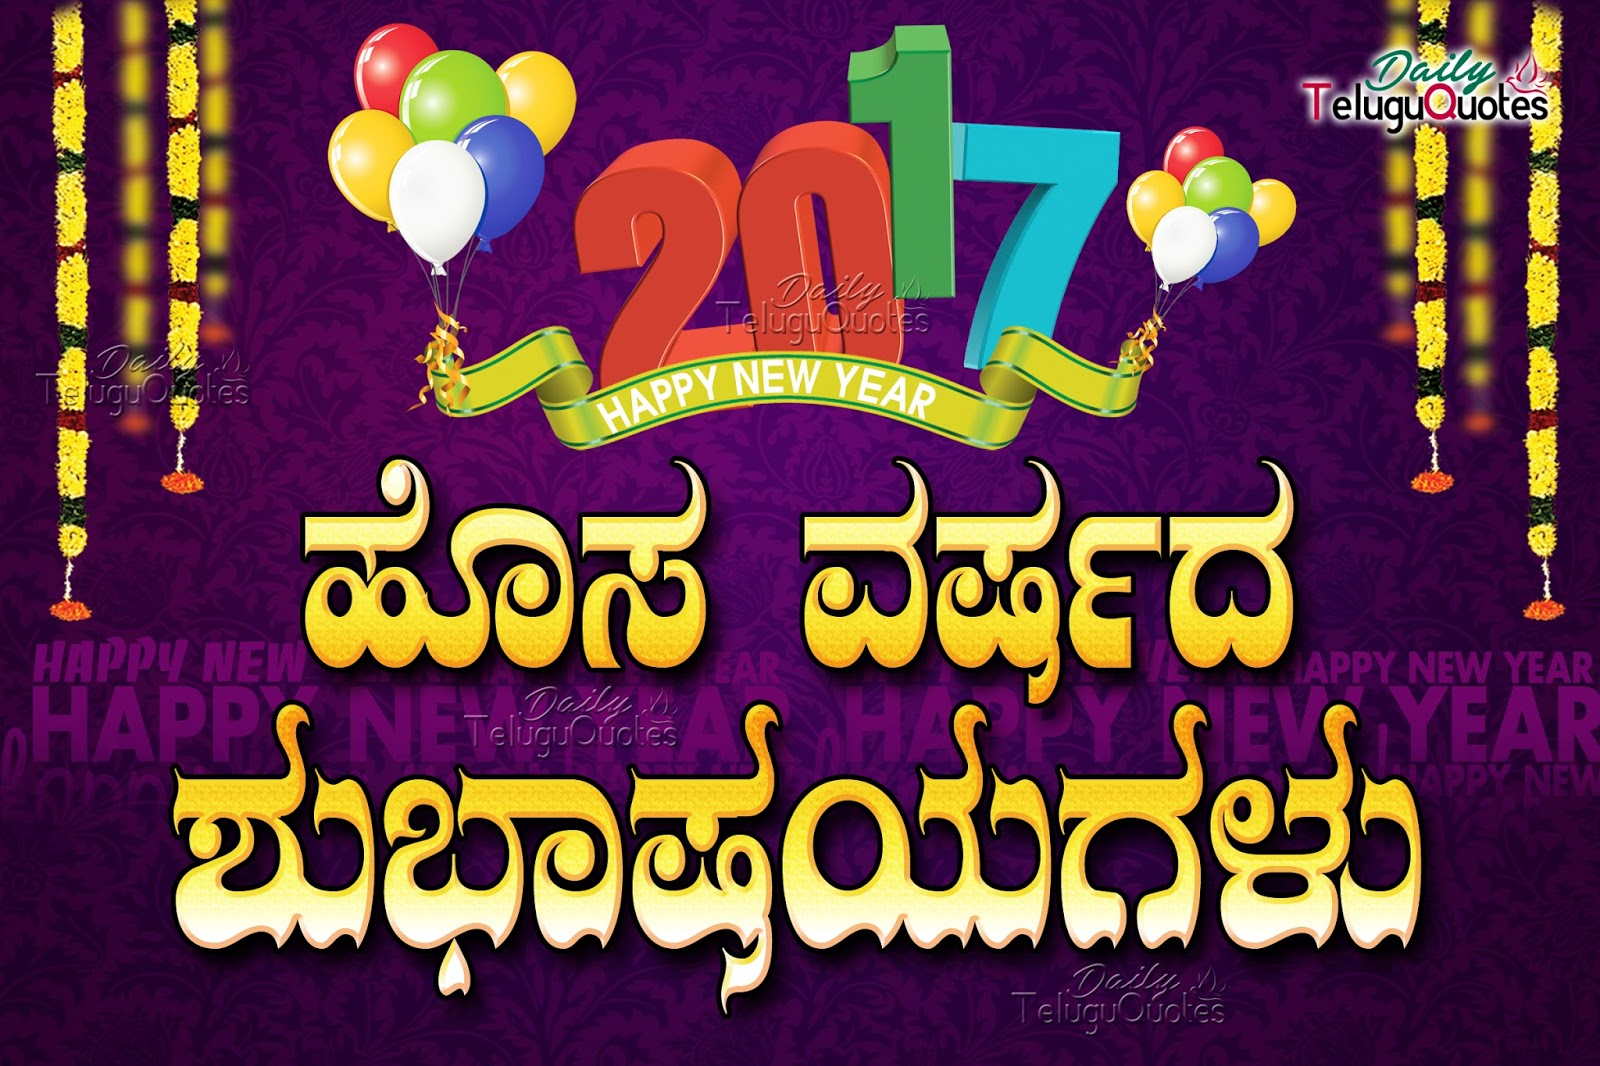 Nice 2017 new year wishes messages kannada dailyteluguquotes nice 2017 new year wishes messages kannada new m4hsunfo